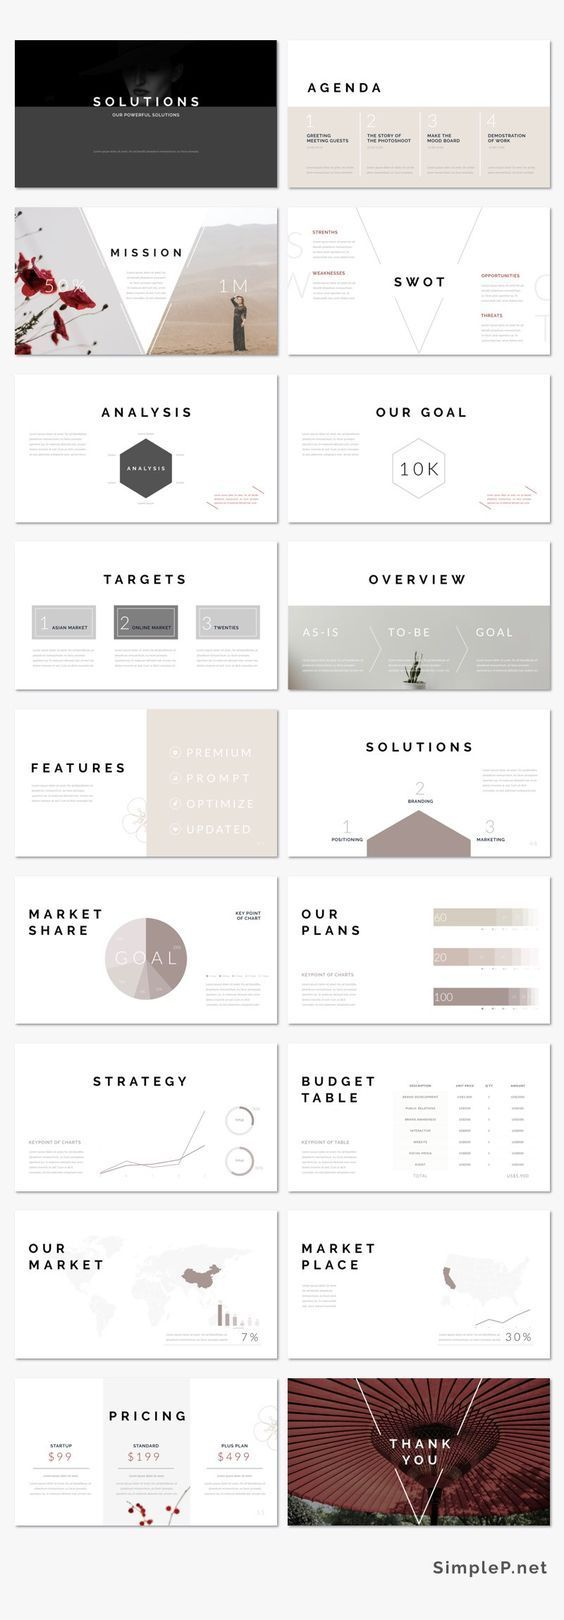 Love this powerpoint presentation template! It is ideal for every creator, desig…